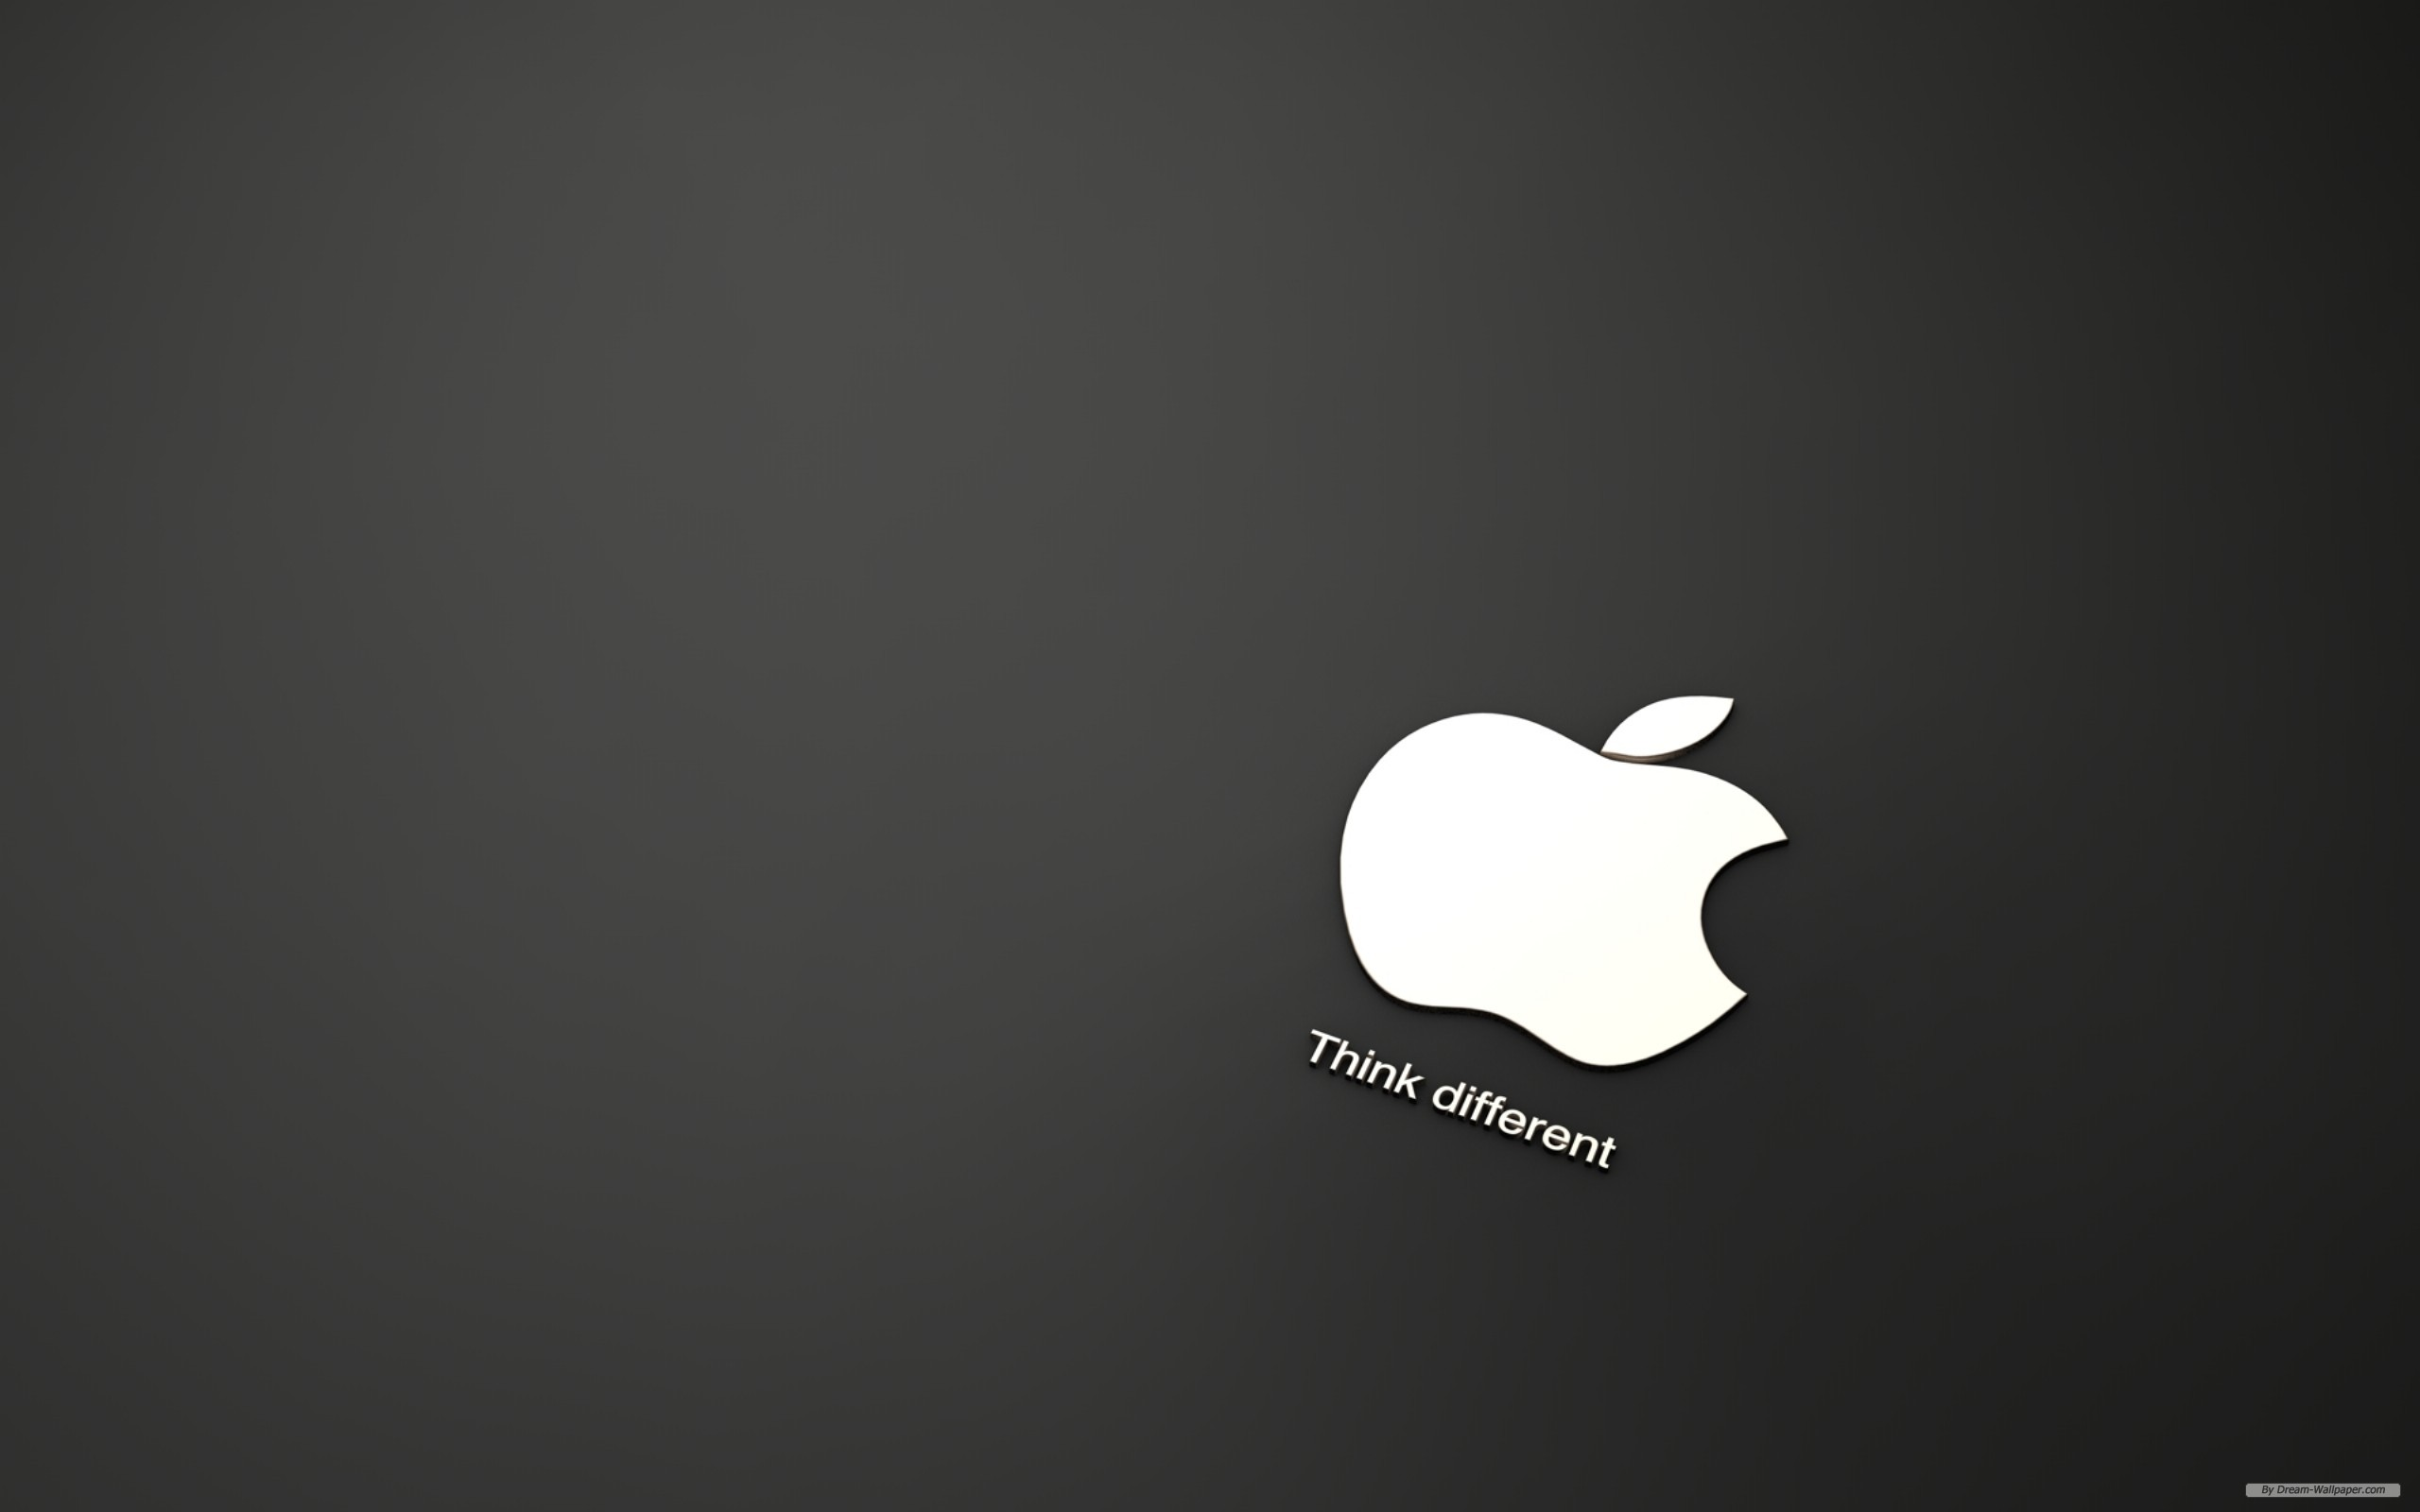 Apple Logo Hd Wallpapers For Iphone 1920 1080 Apple Logo: Apple Full HD Wallpaper And Background